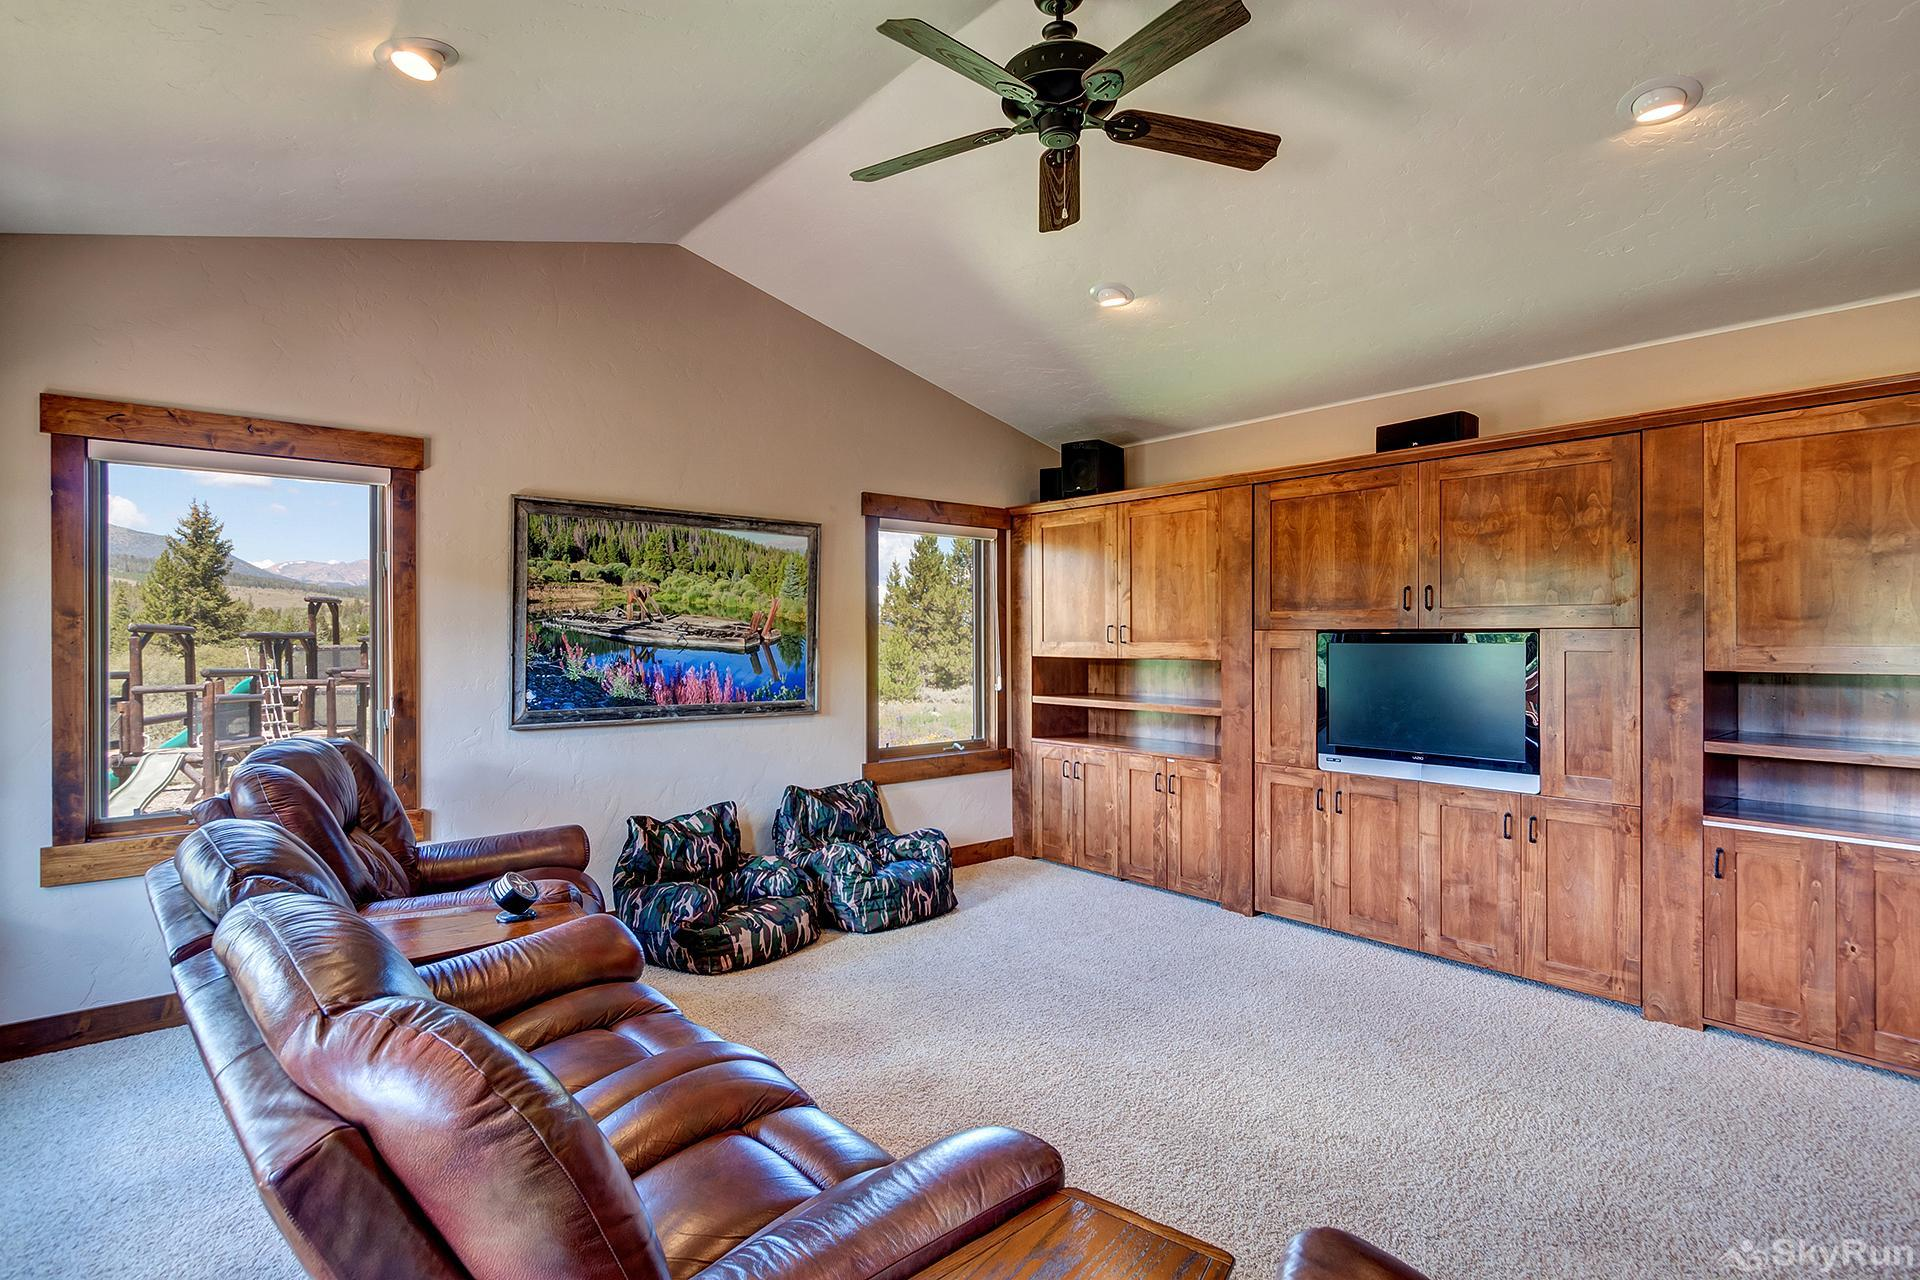 Swan River Retreat Home theater area, perfect for enjoying movies or sports events with the family